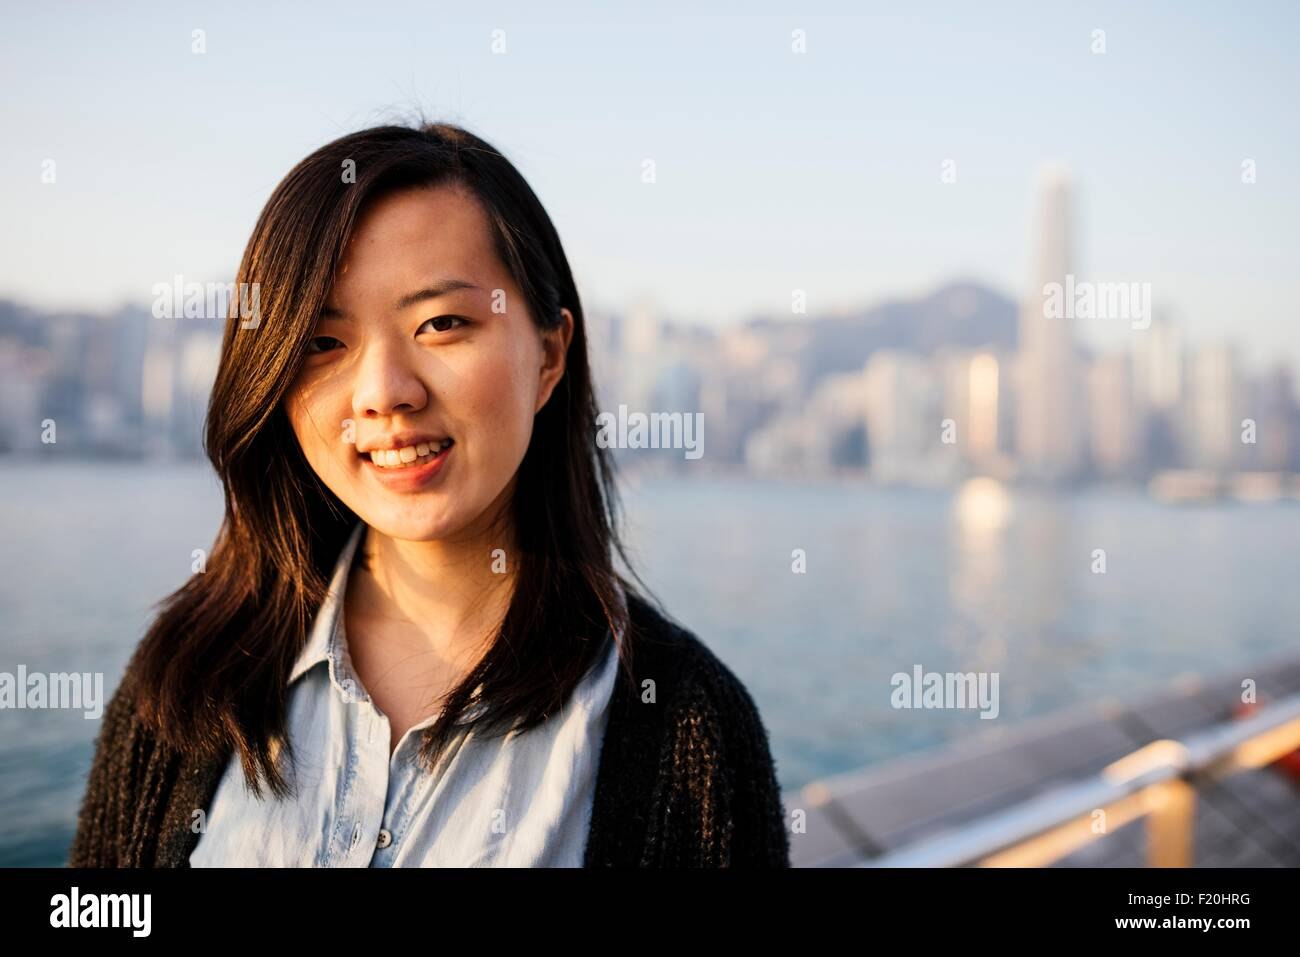 Portrait of young woman with long hair wearing shirt and cardigan in front of water, looking at camera - Stock Image